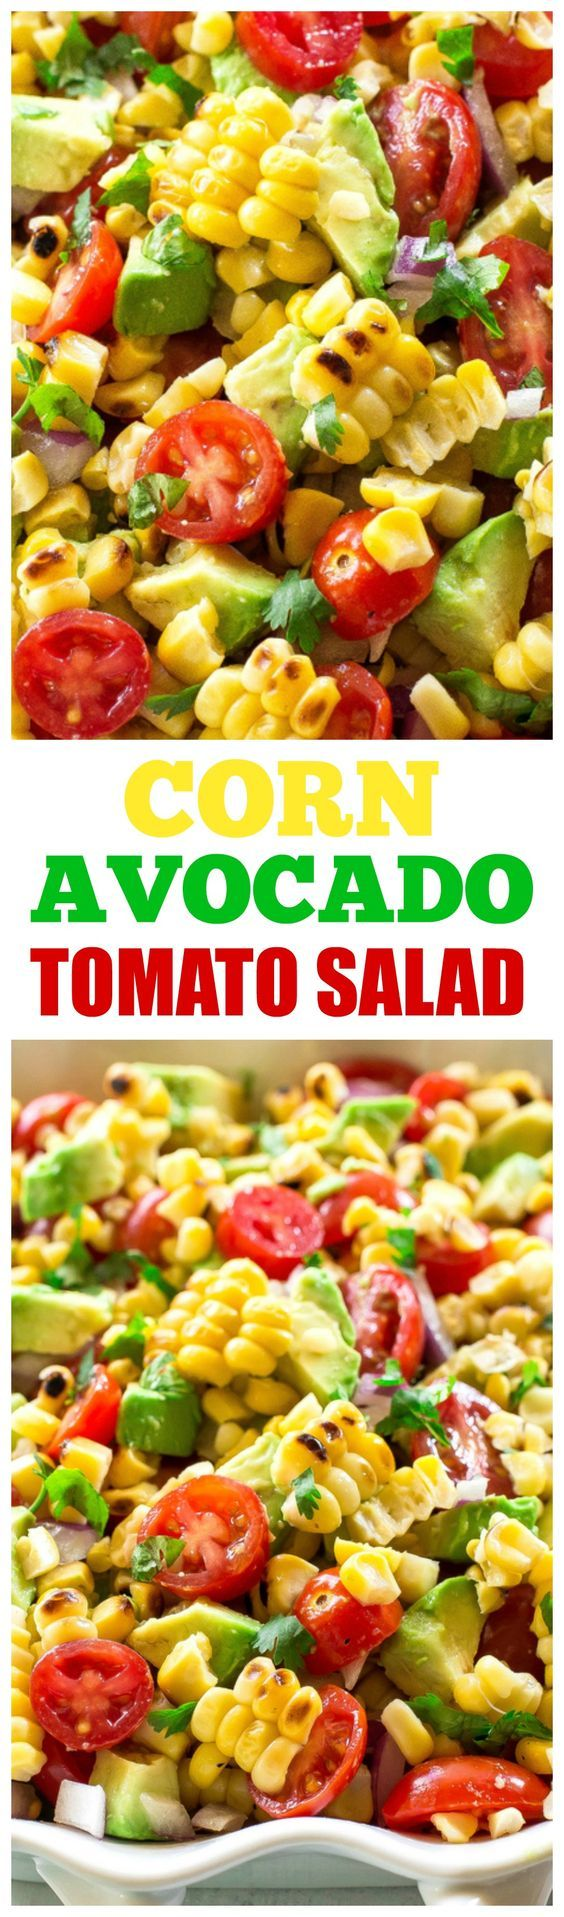 Corn, Avocado, and Tomato Salad - 2 cups cooked corn, fresh or frozen (see Note) 1-2 avocados, cut into ½-inch cubes 1 pint cherry or grape tomatoes, halved ½ cup finely diced red onion Dressing: 2 tablespoons olive oil ½ teaspoon grated lime zest 1 tablespoon fresh lime juice ¼ cup chopped cilantro ¼ teaspoon salt ¼ teaspoon pepper